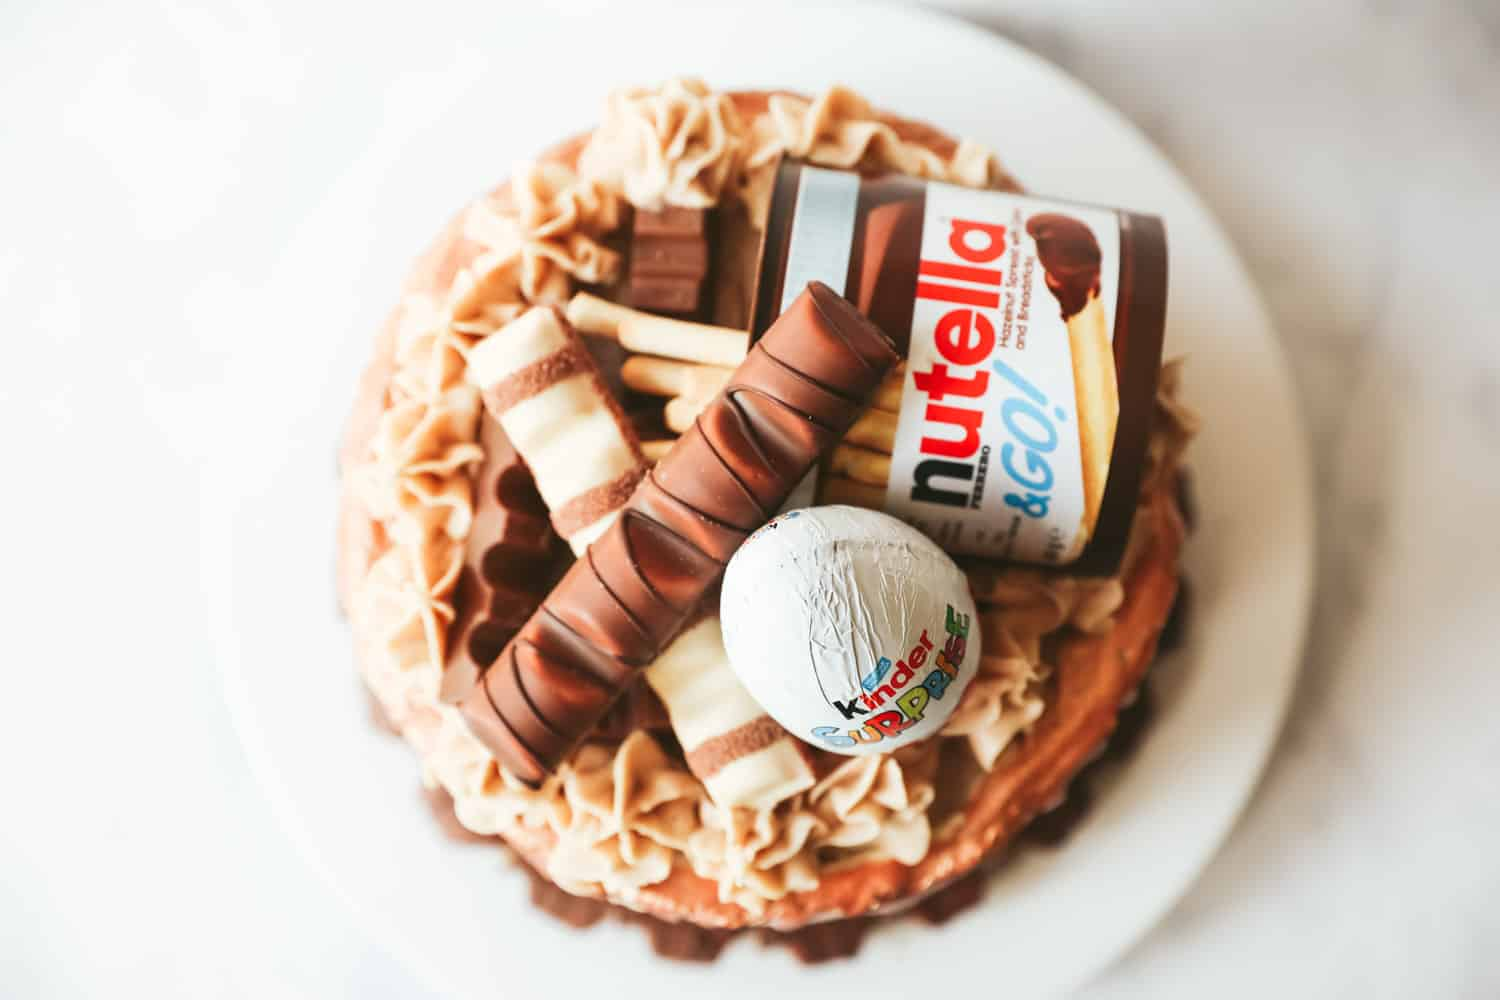 Overhead view of a Kinder cake decorated with a Nutella and Go, a Kinder Egg, Kinder chocolate and Kinder Bueno